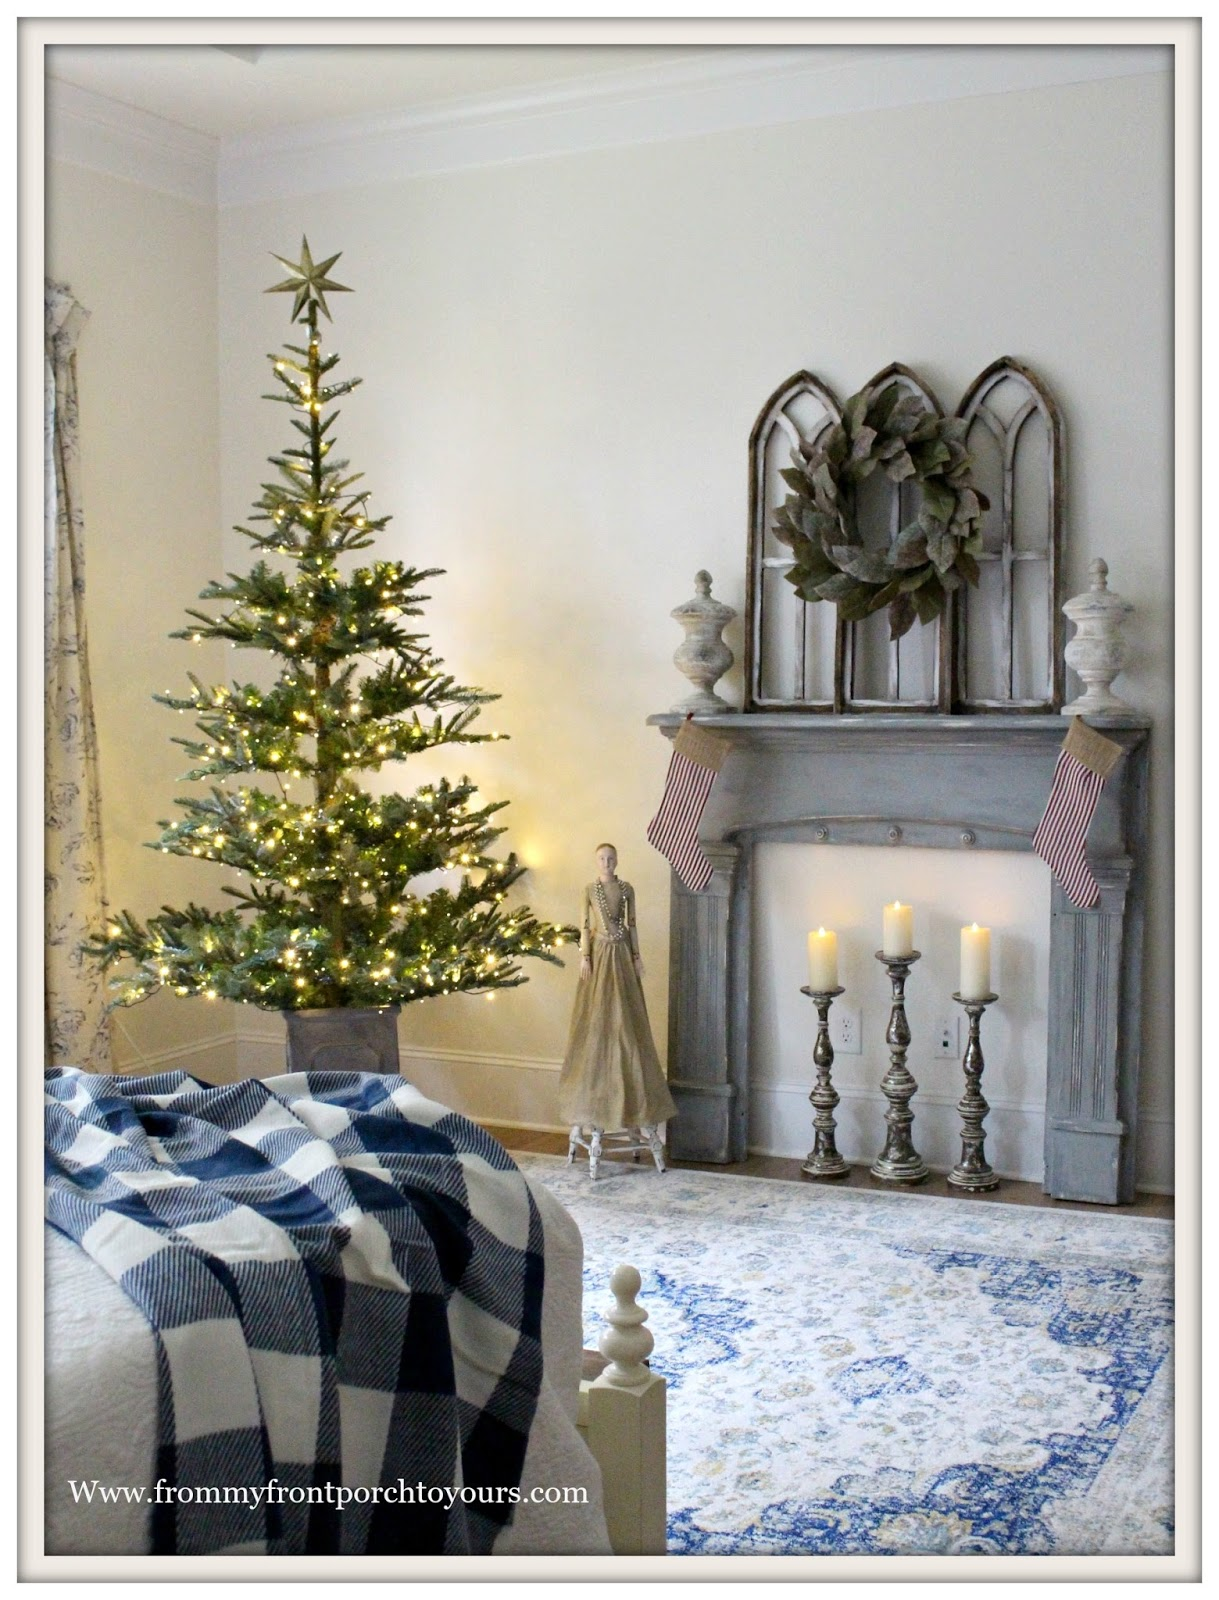 French Country Farmhouse Buffalo Check Blanket Blue And White Vintage Mantel Christmas